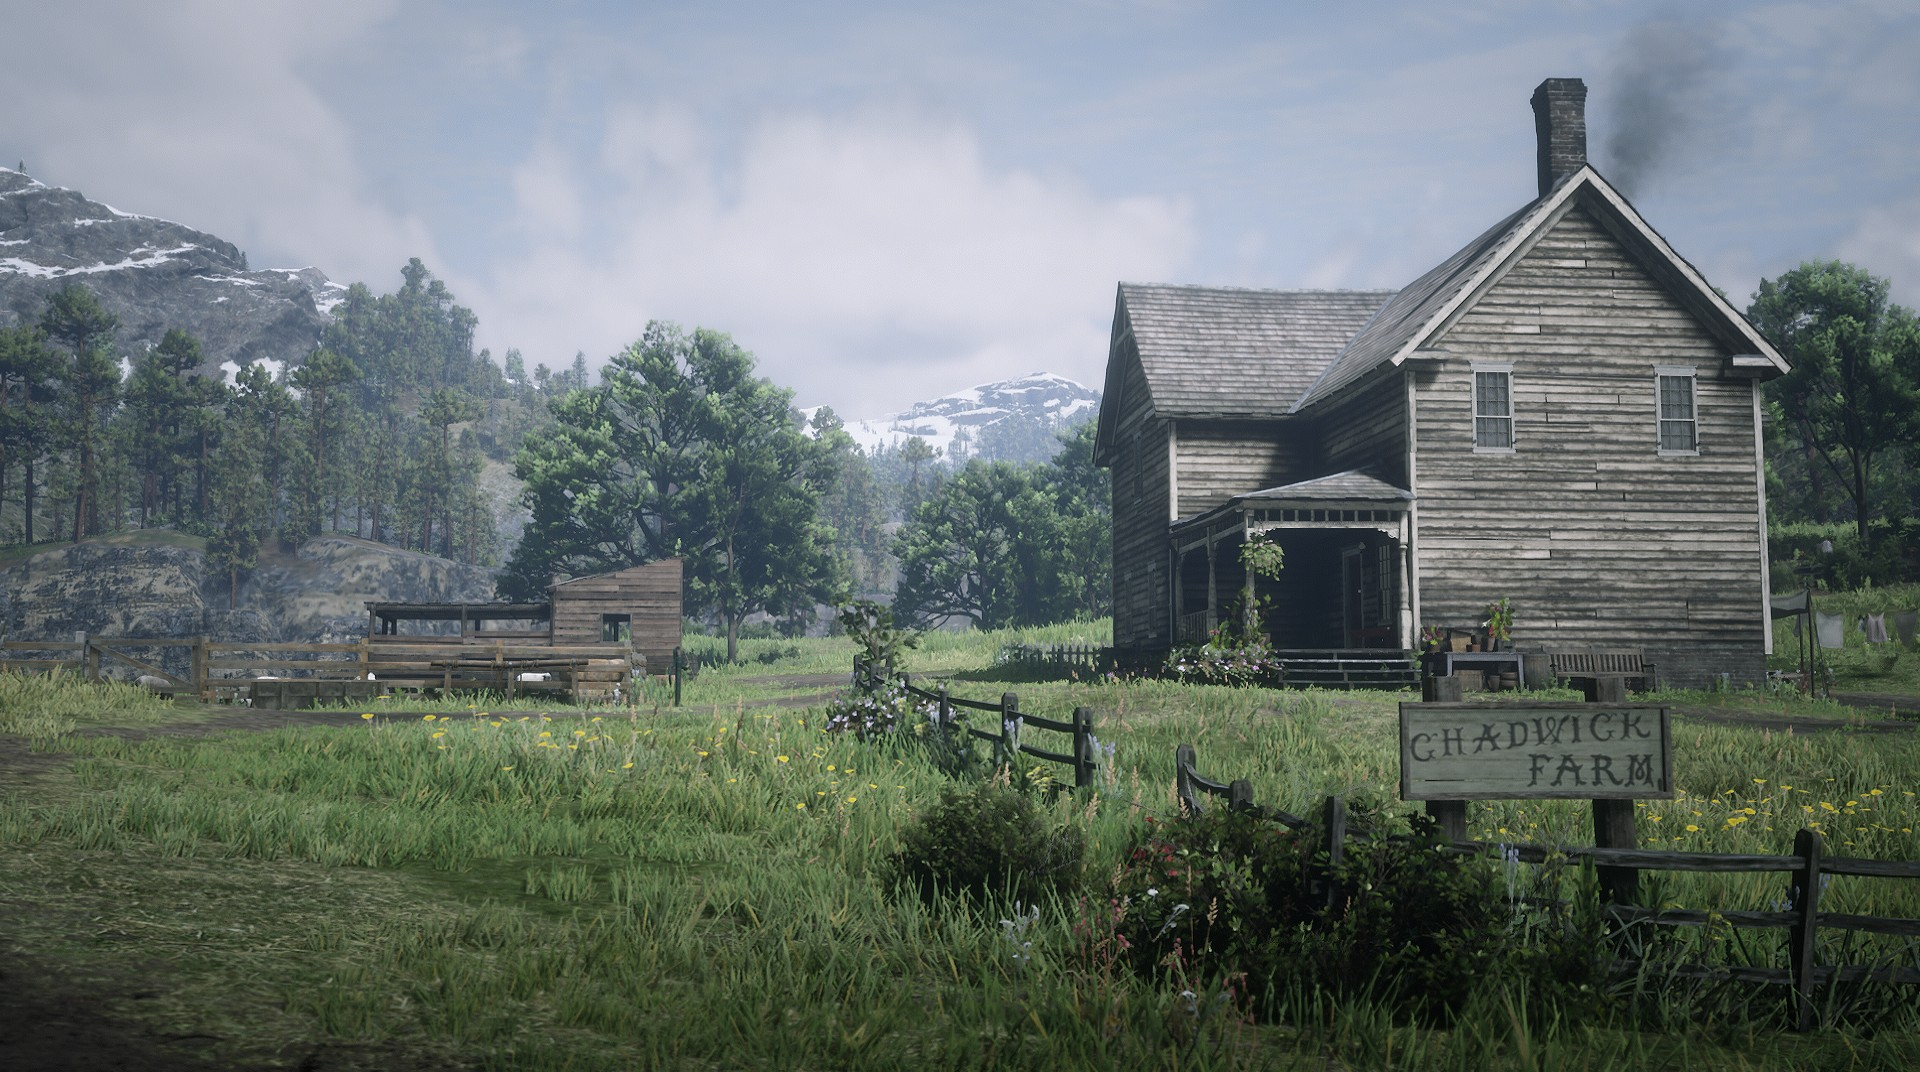 Chadwick Farm | Red Dead Wiki | FANDOM powered by Wikia